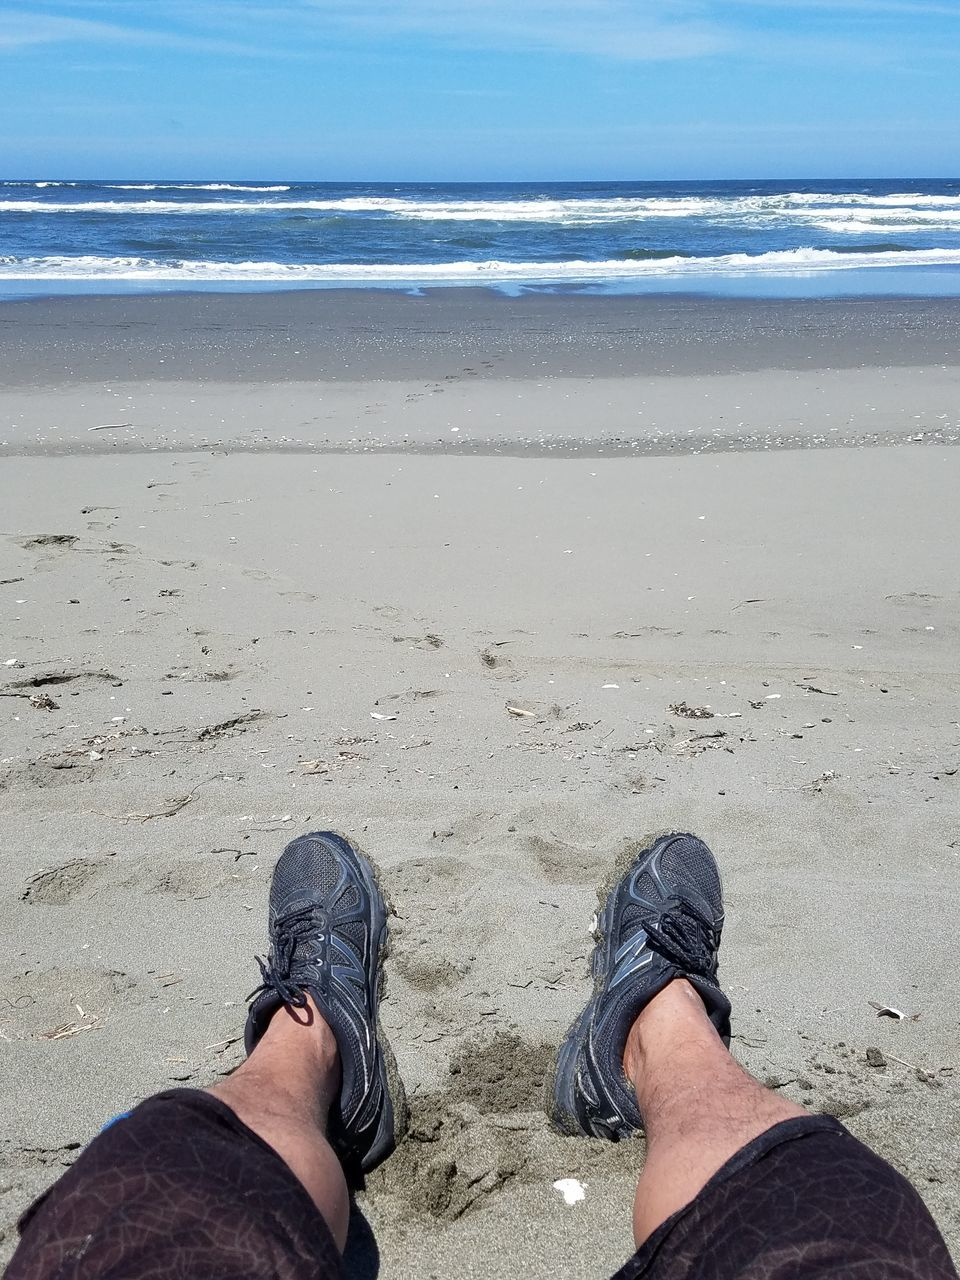 human leg, low section, beach, shoe, human body part, one person, personal perspective, real people, day, sea, men, standing, high angle view, leisure activity, sand, lifestyles, outdoors, nature, one man only, horizon over water, sky, water, close-up, only men, adult, people, adults only